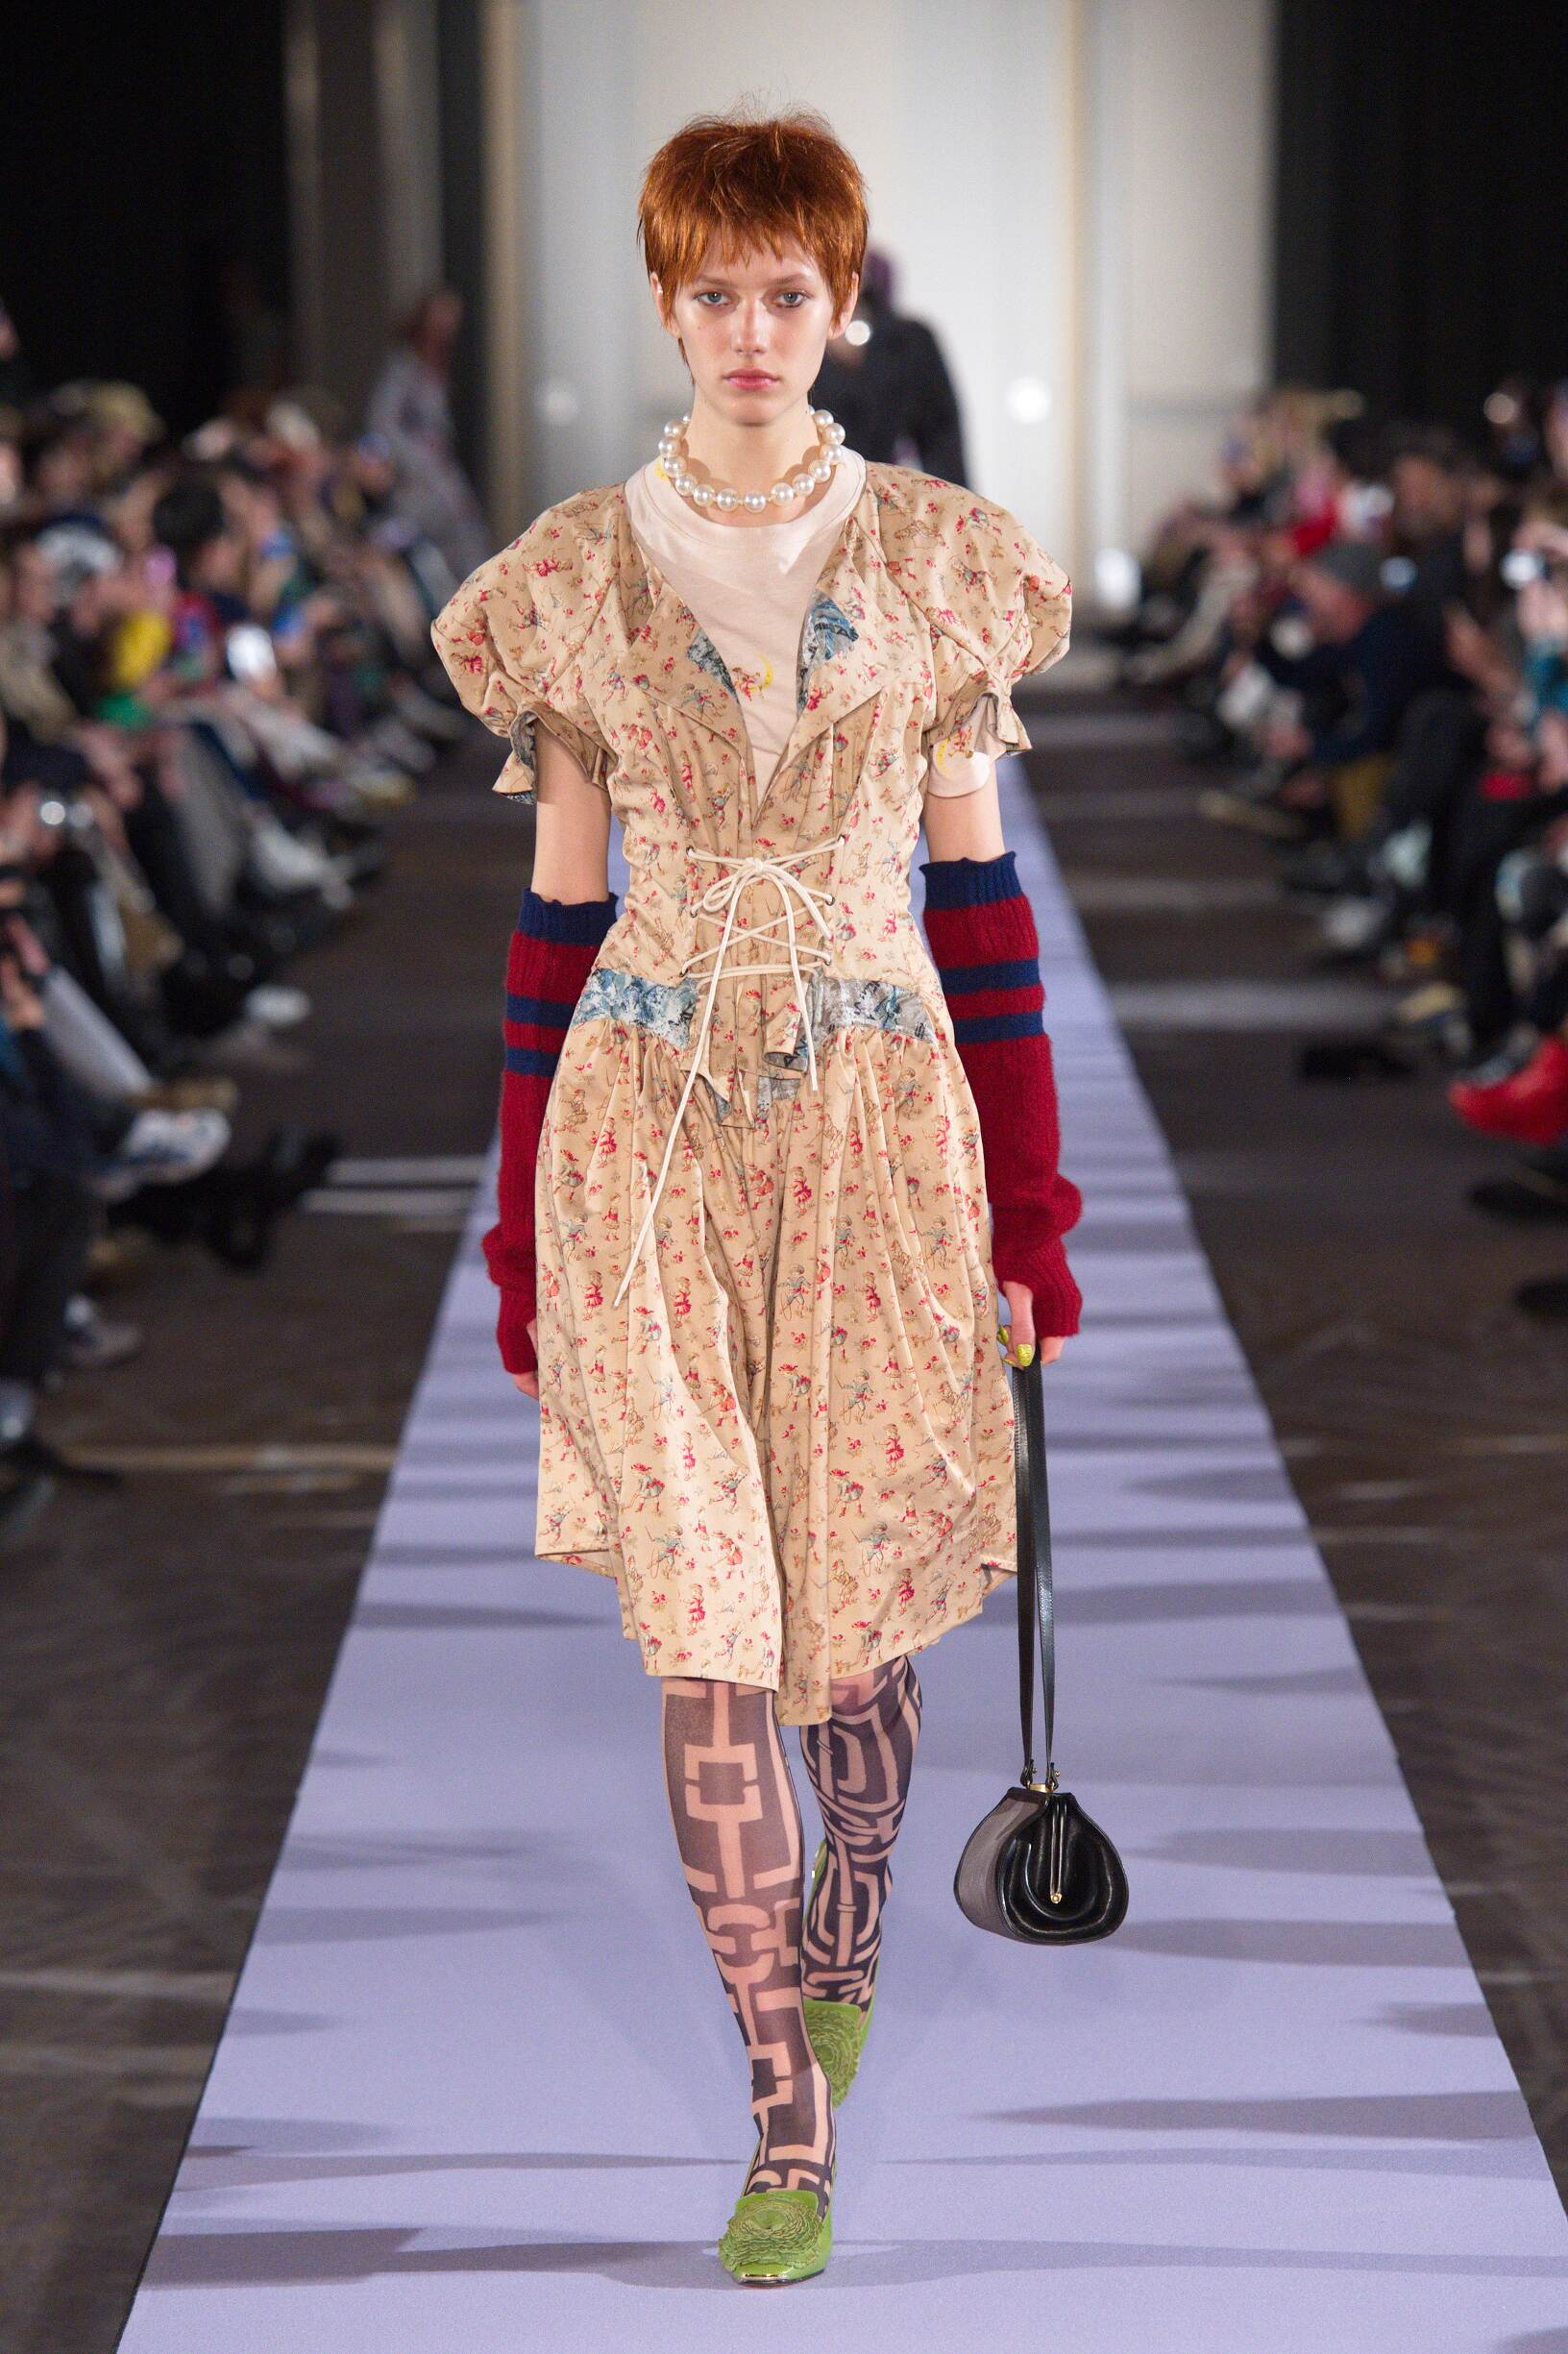 FW 2019-20 Andreas Kronthaler for Vivienne Westwood Fashion Show